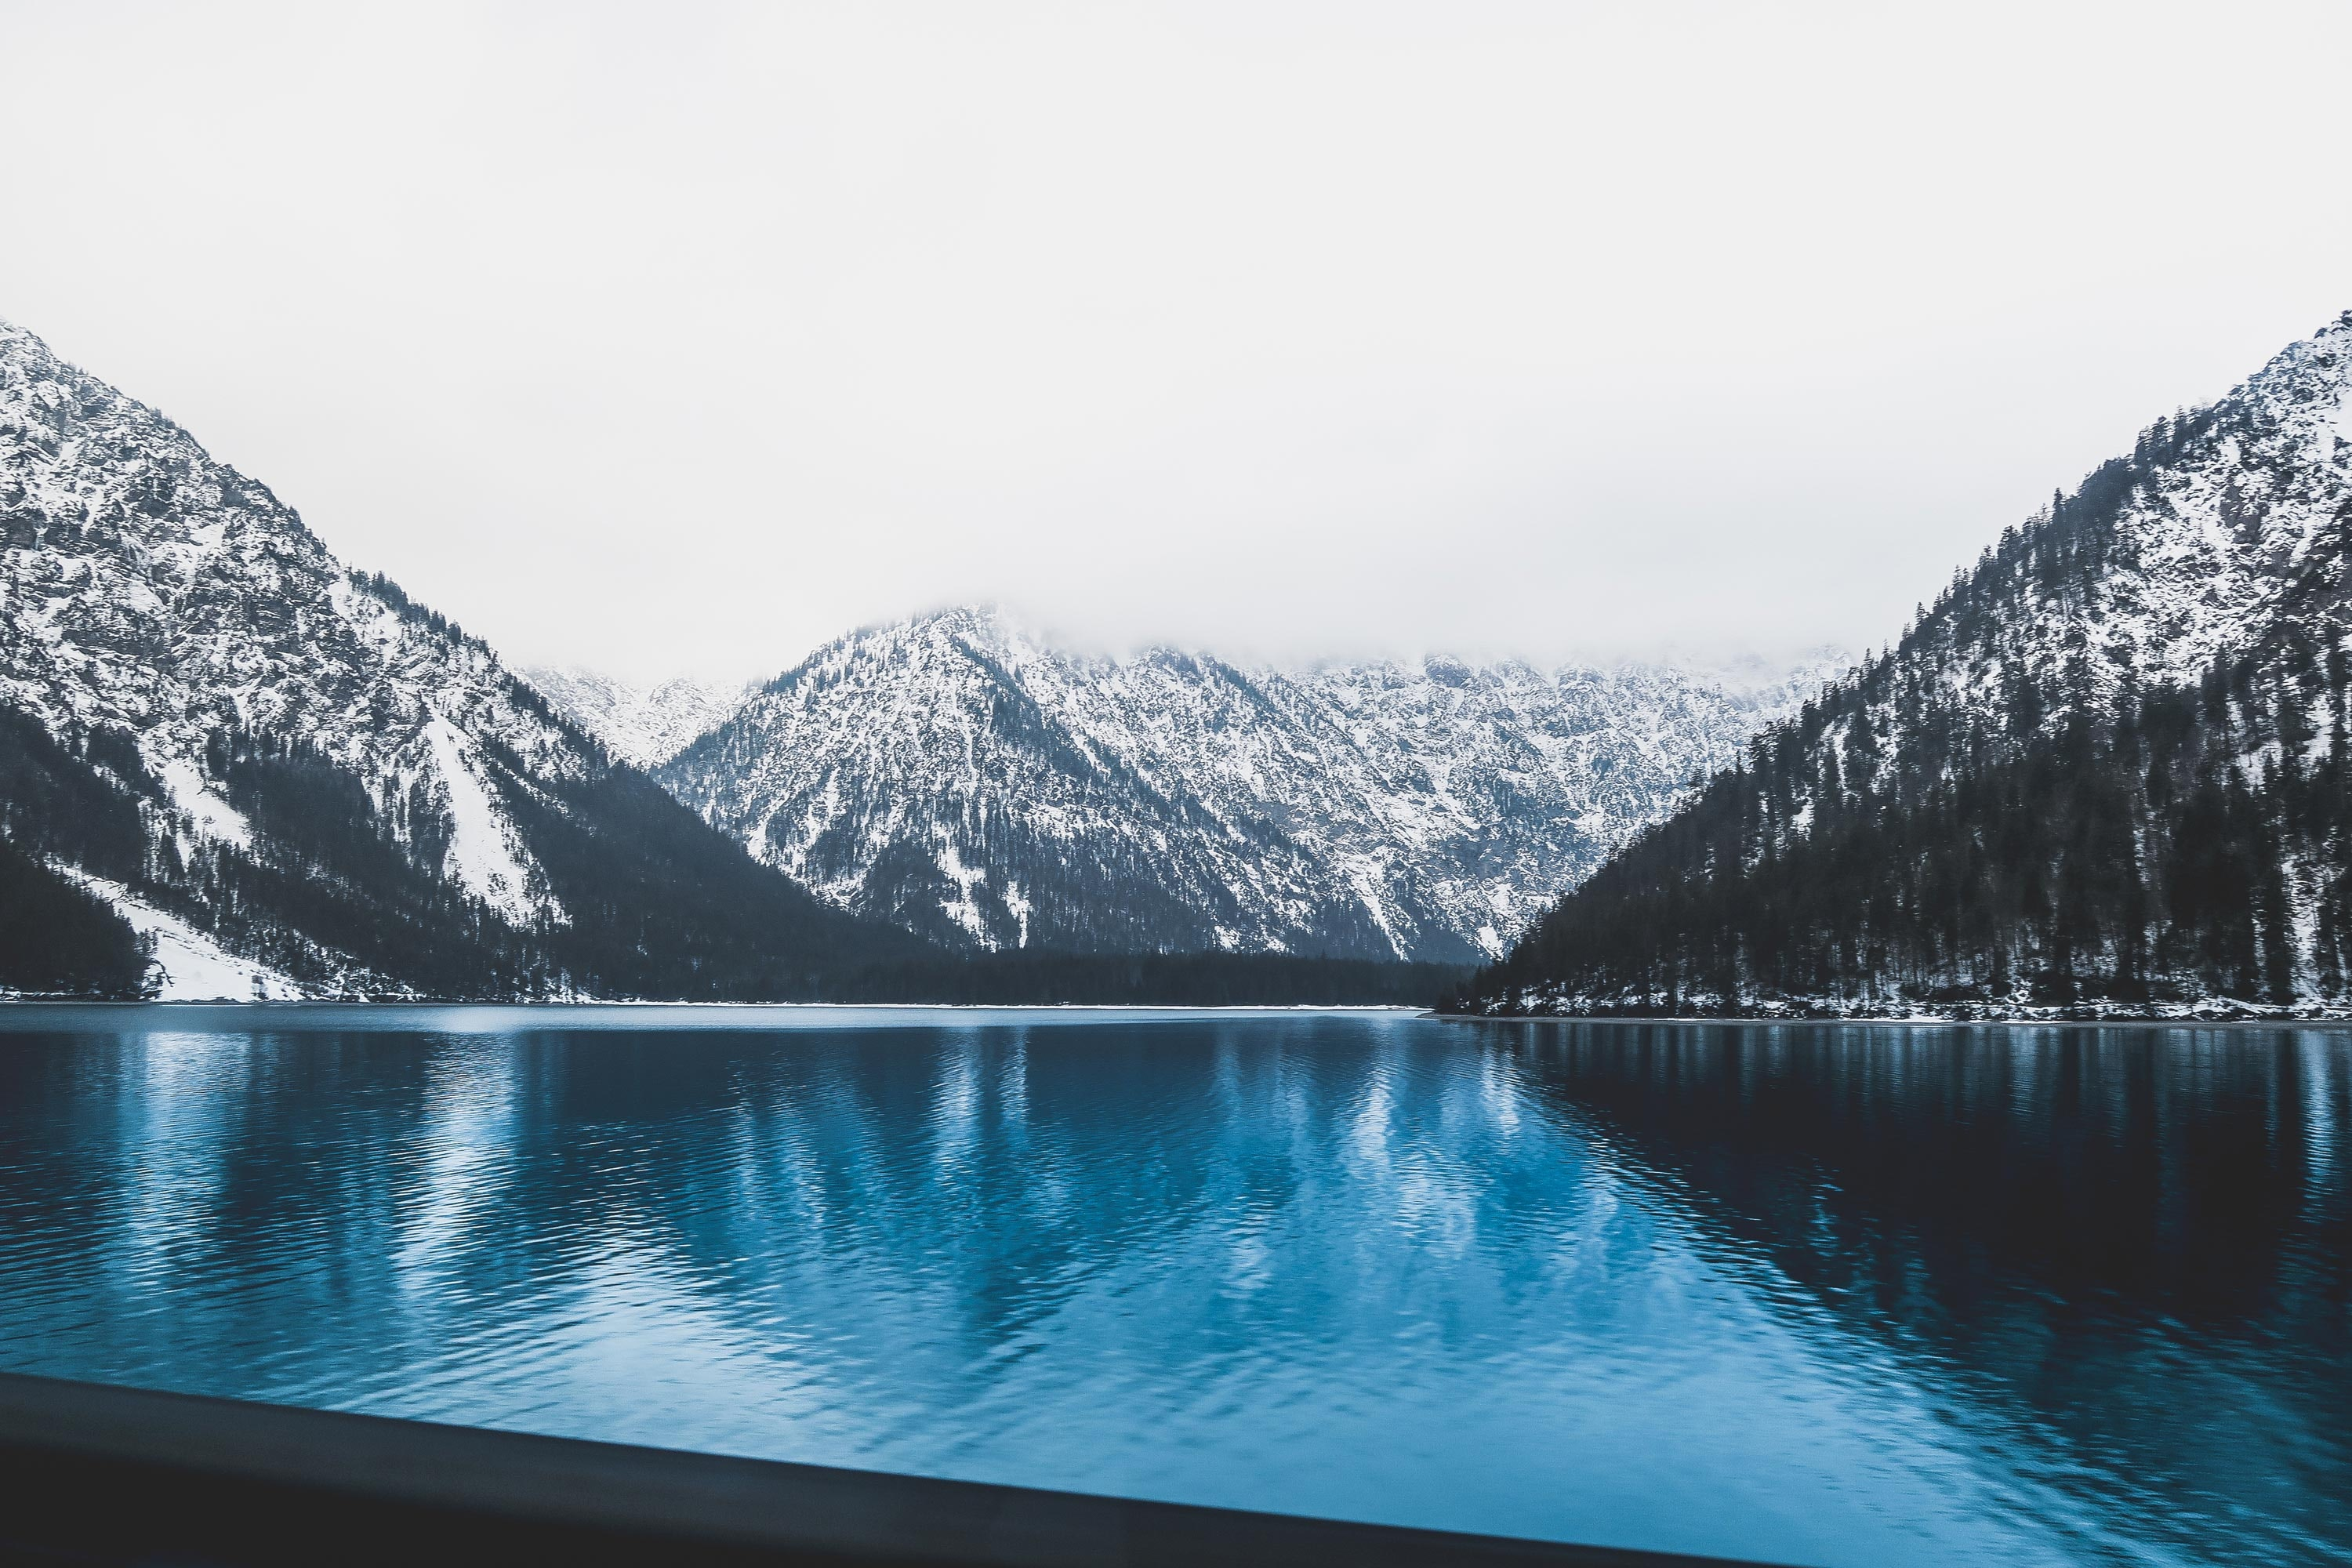 landscape photo of clear blue body of water near mountains covered with snow